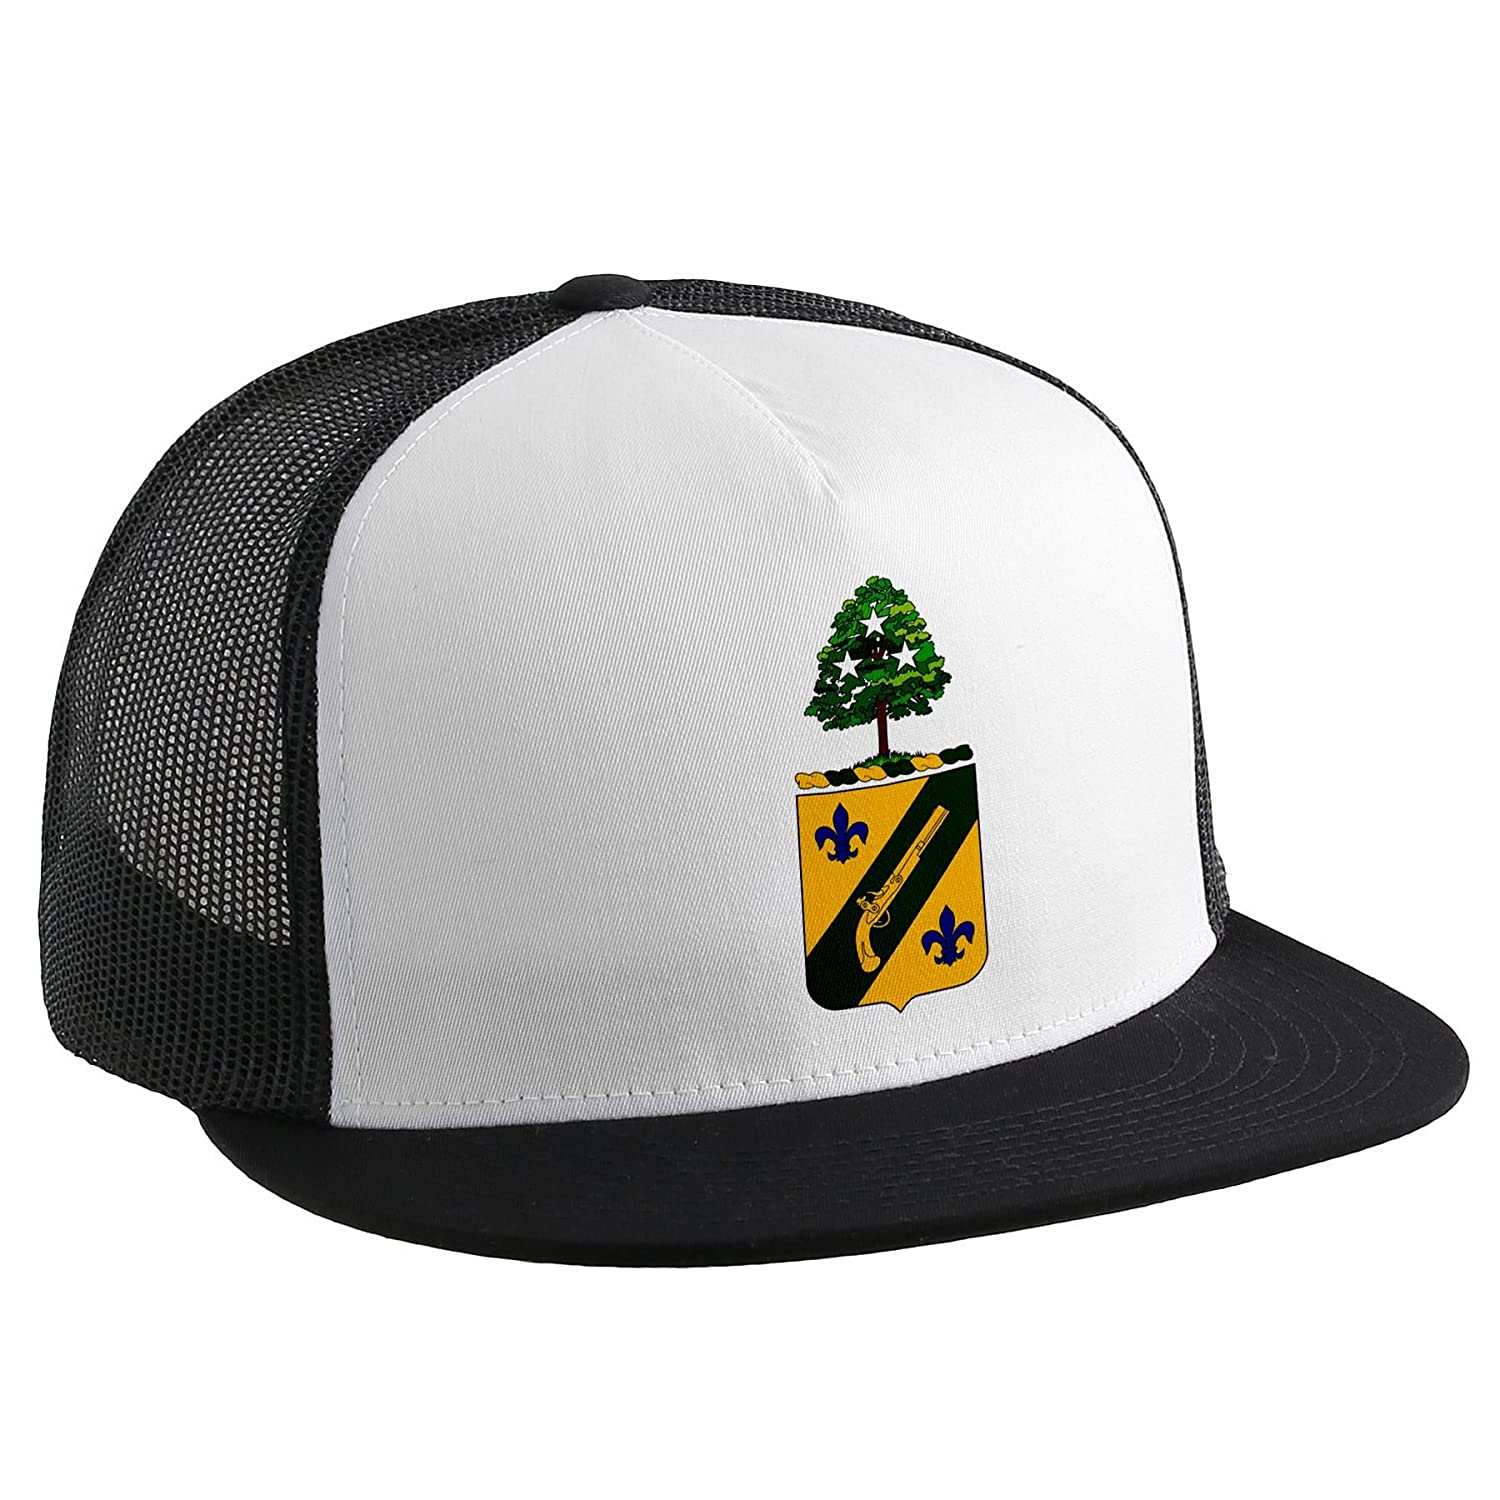 Trucker Hat withアメリカ陸軍117th軍警察大隊、コート   B00V1NHT9A